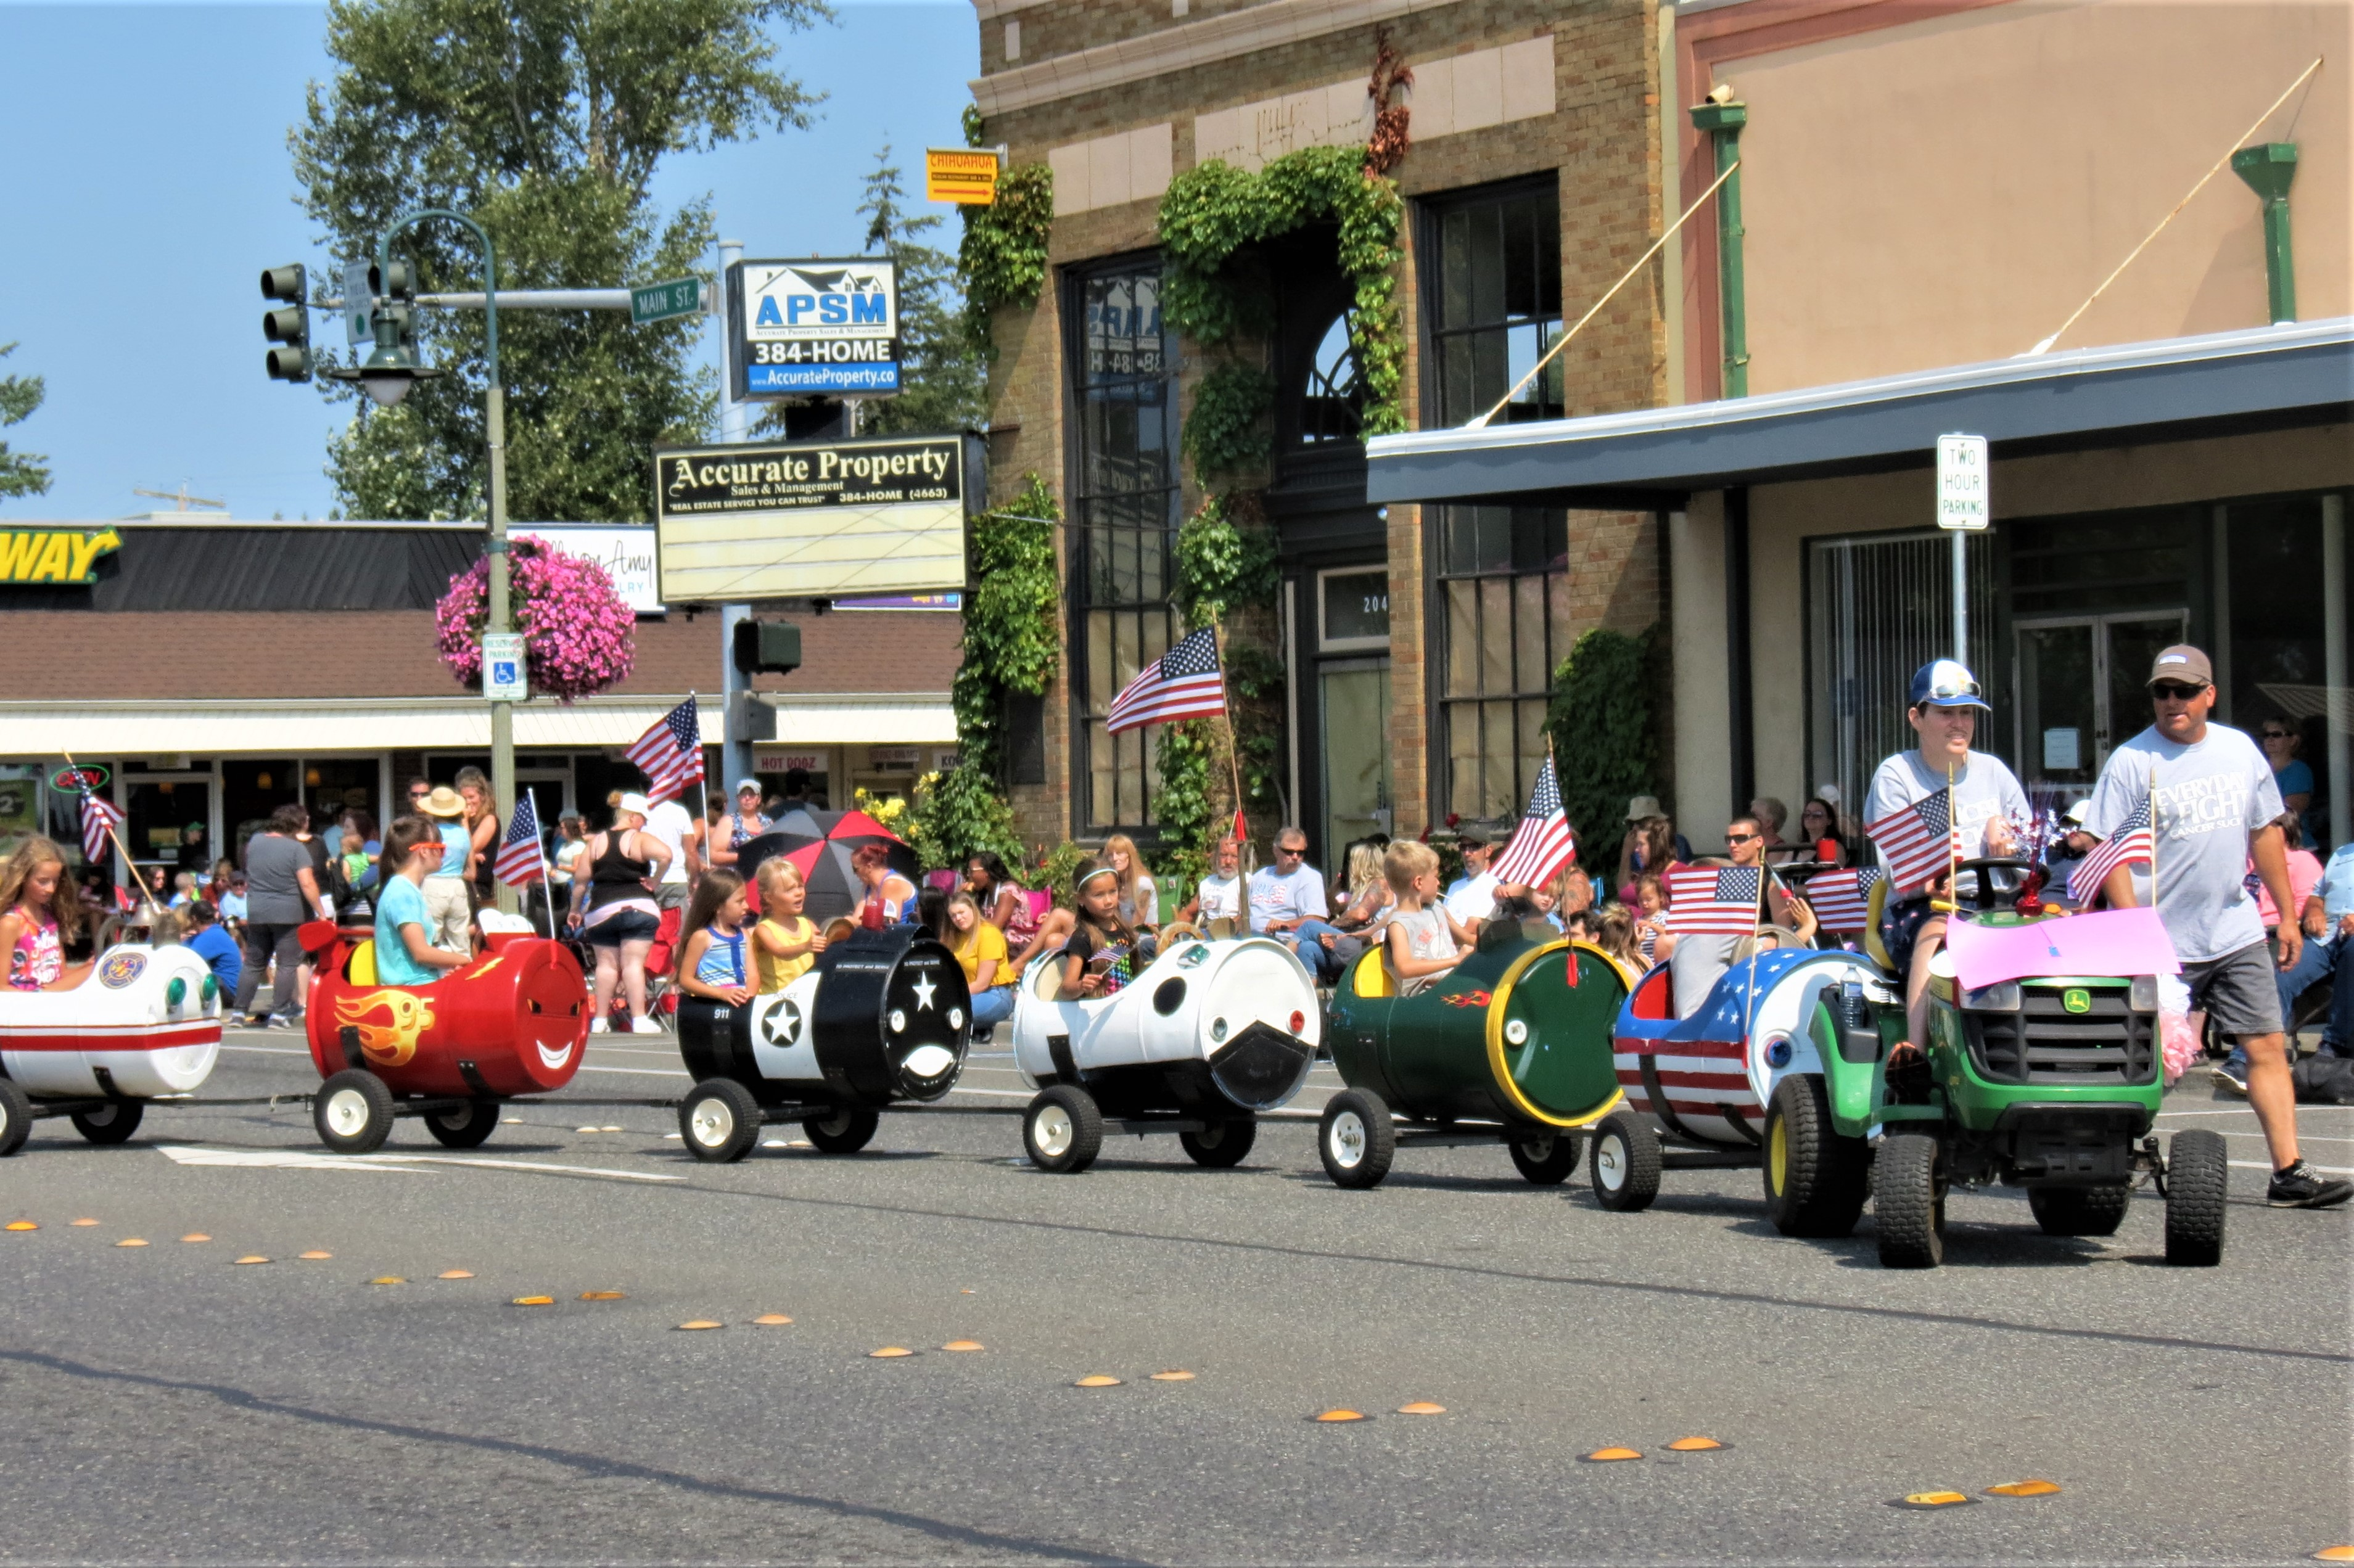 One of the many entries in the 2018 Whatcom County Old Settlers' Picnic Grand Parade (July 28, 2018). Photo: My Ferndale News